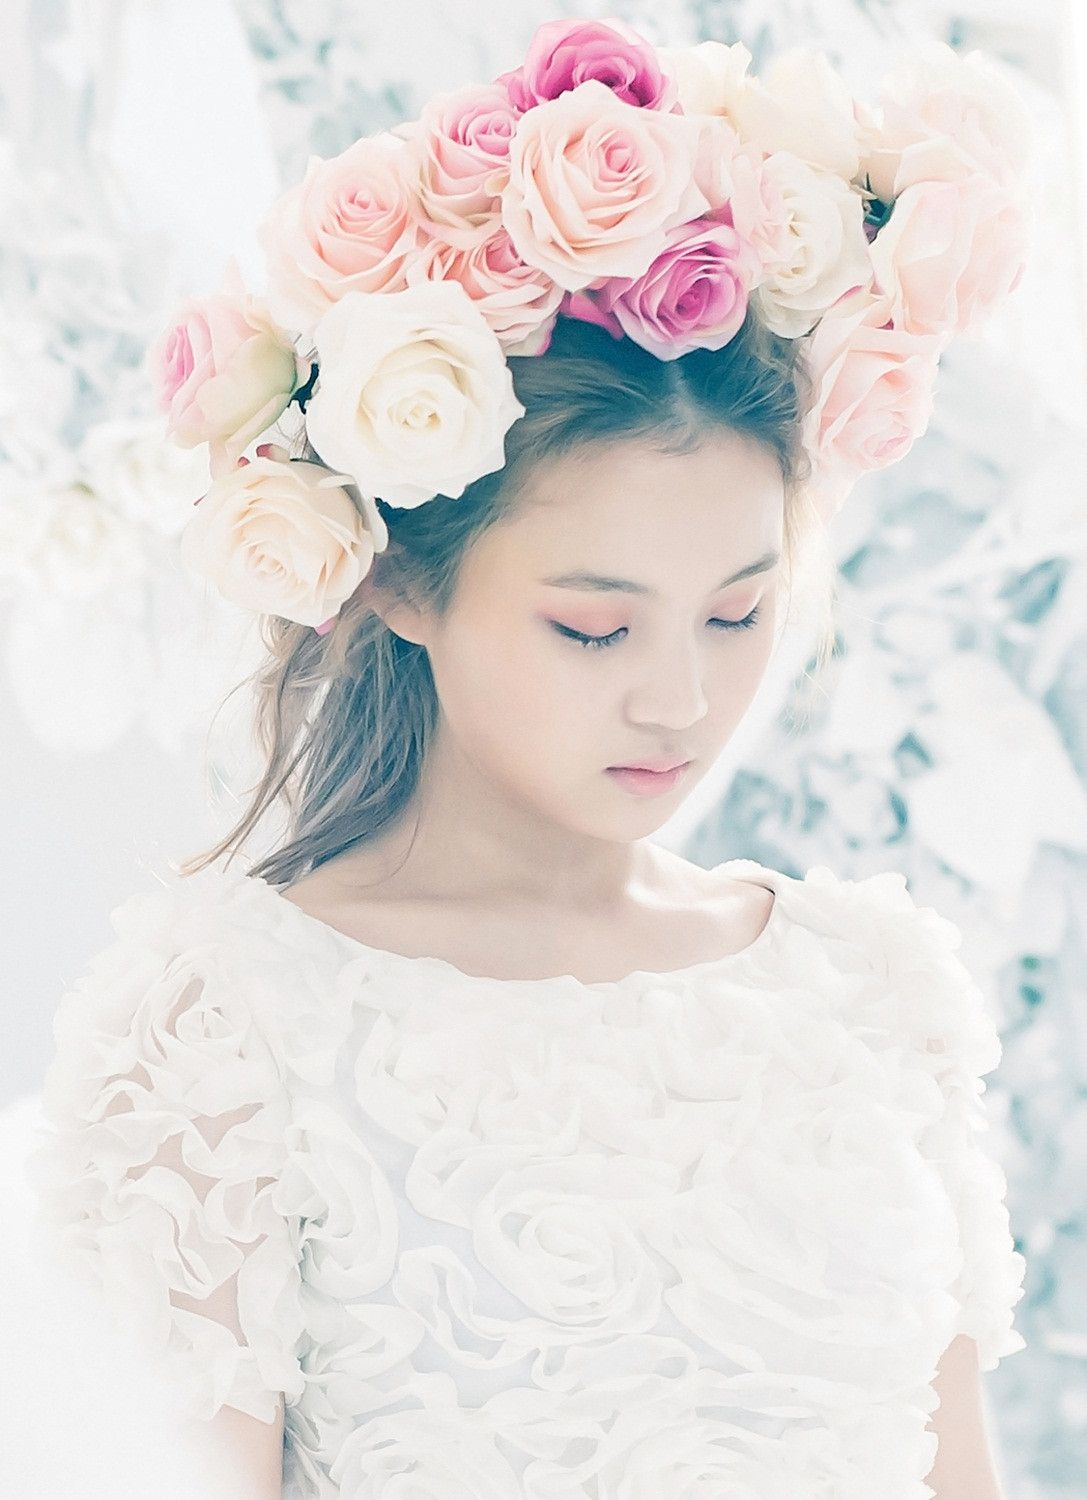 12 Gorgeous Photoshoots With K Pop Idols Flowers Lee Hi Rose Rose Crown Flower Girl